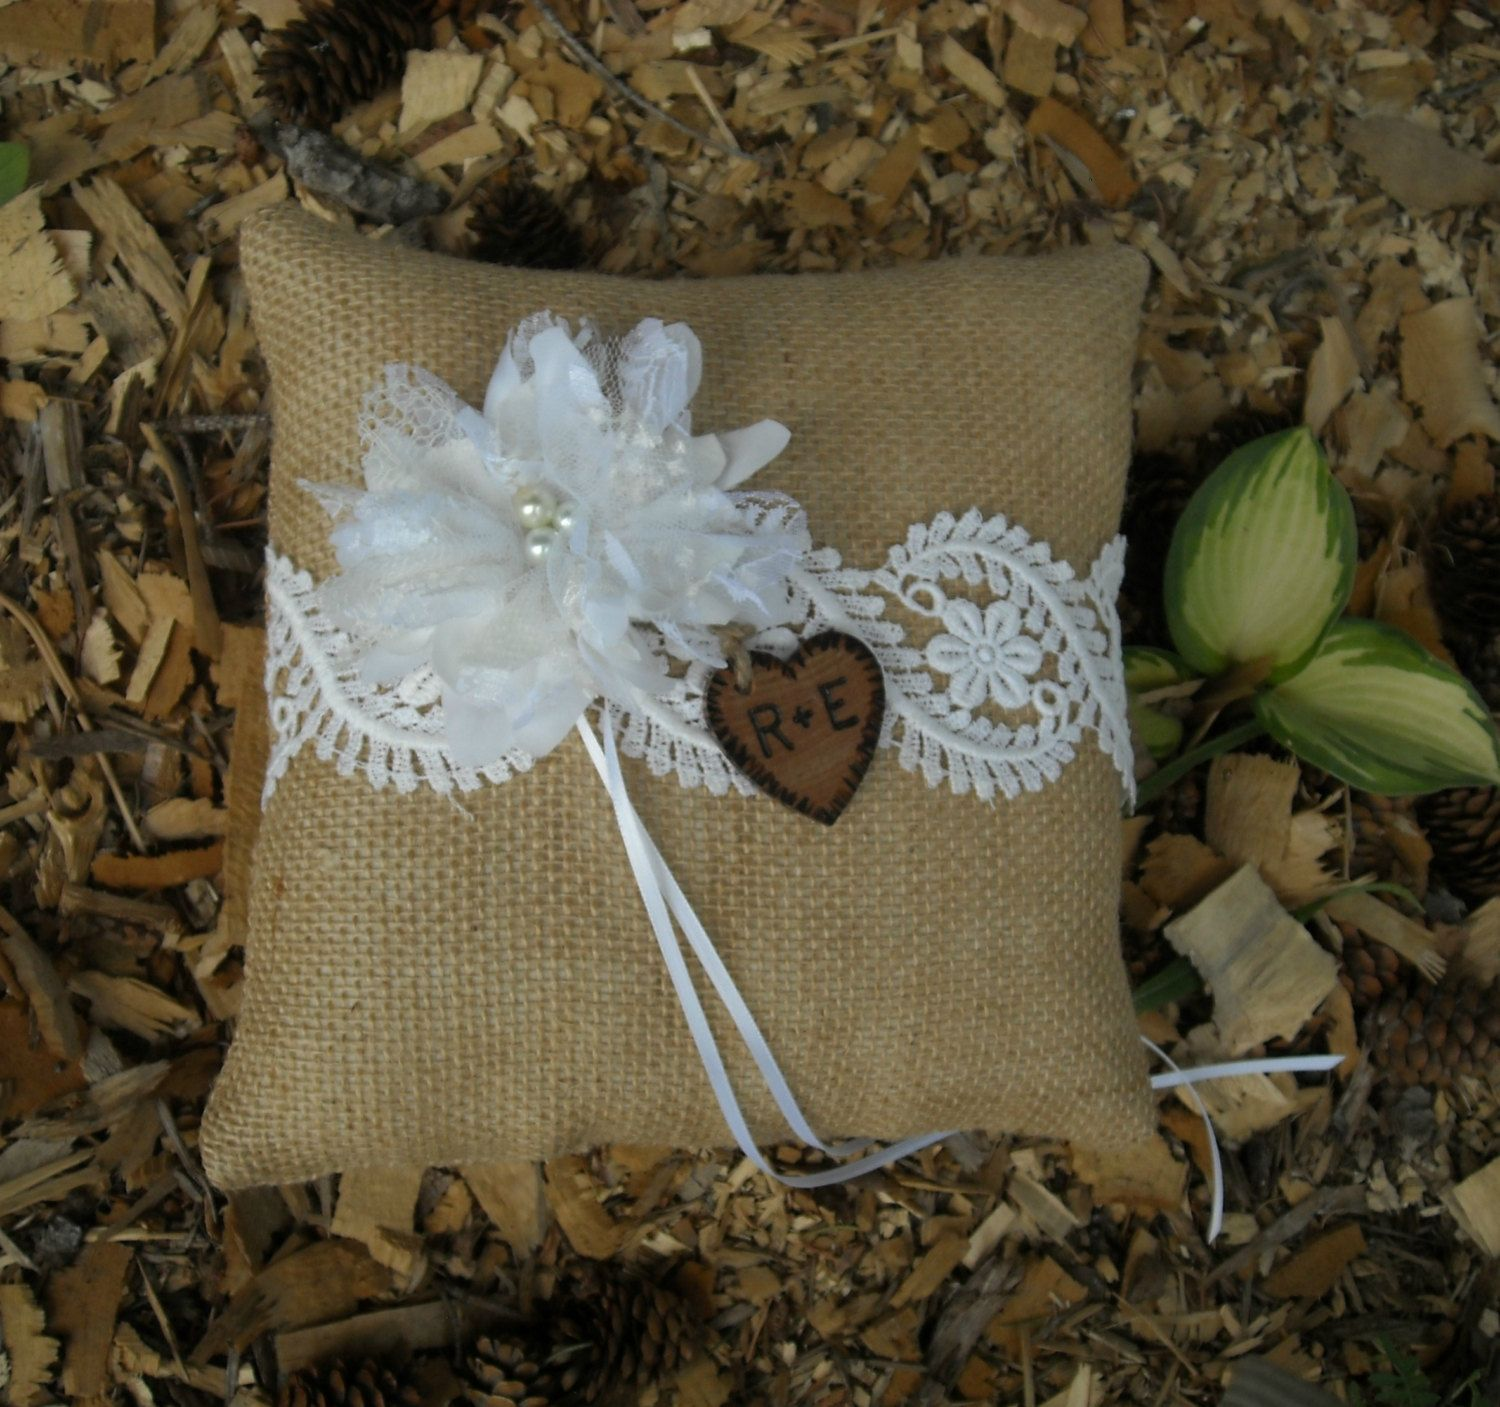 Personalized Burlap Ring Bearer Pillow by MyMontanaHomestead $22.00 & Personalized Burlap Ring Bearer Pillow by MyMontanaHomestead ... pillowsntoast.com